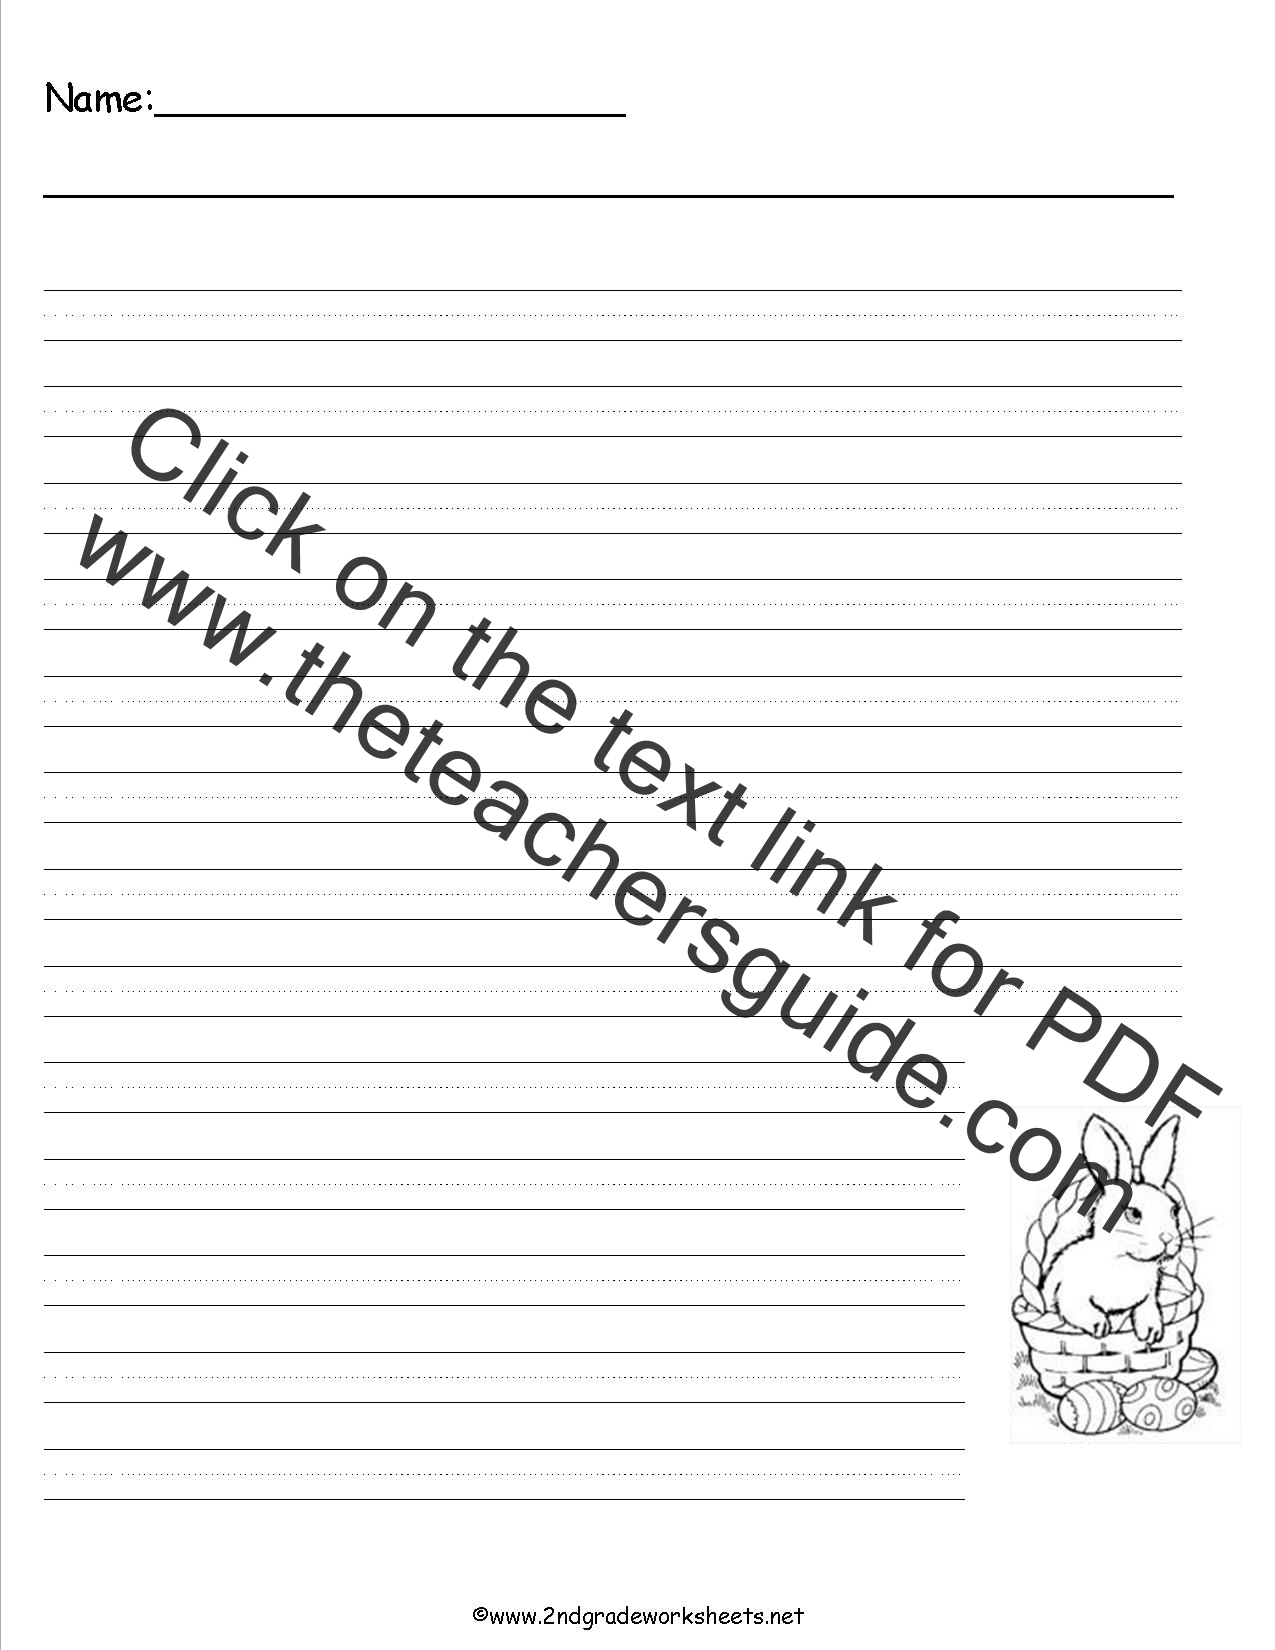 worksheet Free Easter Worksheets easter worksheets and printouts writing paper